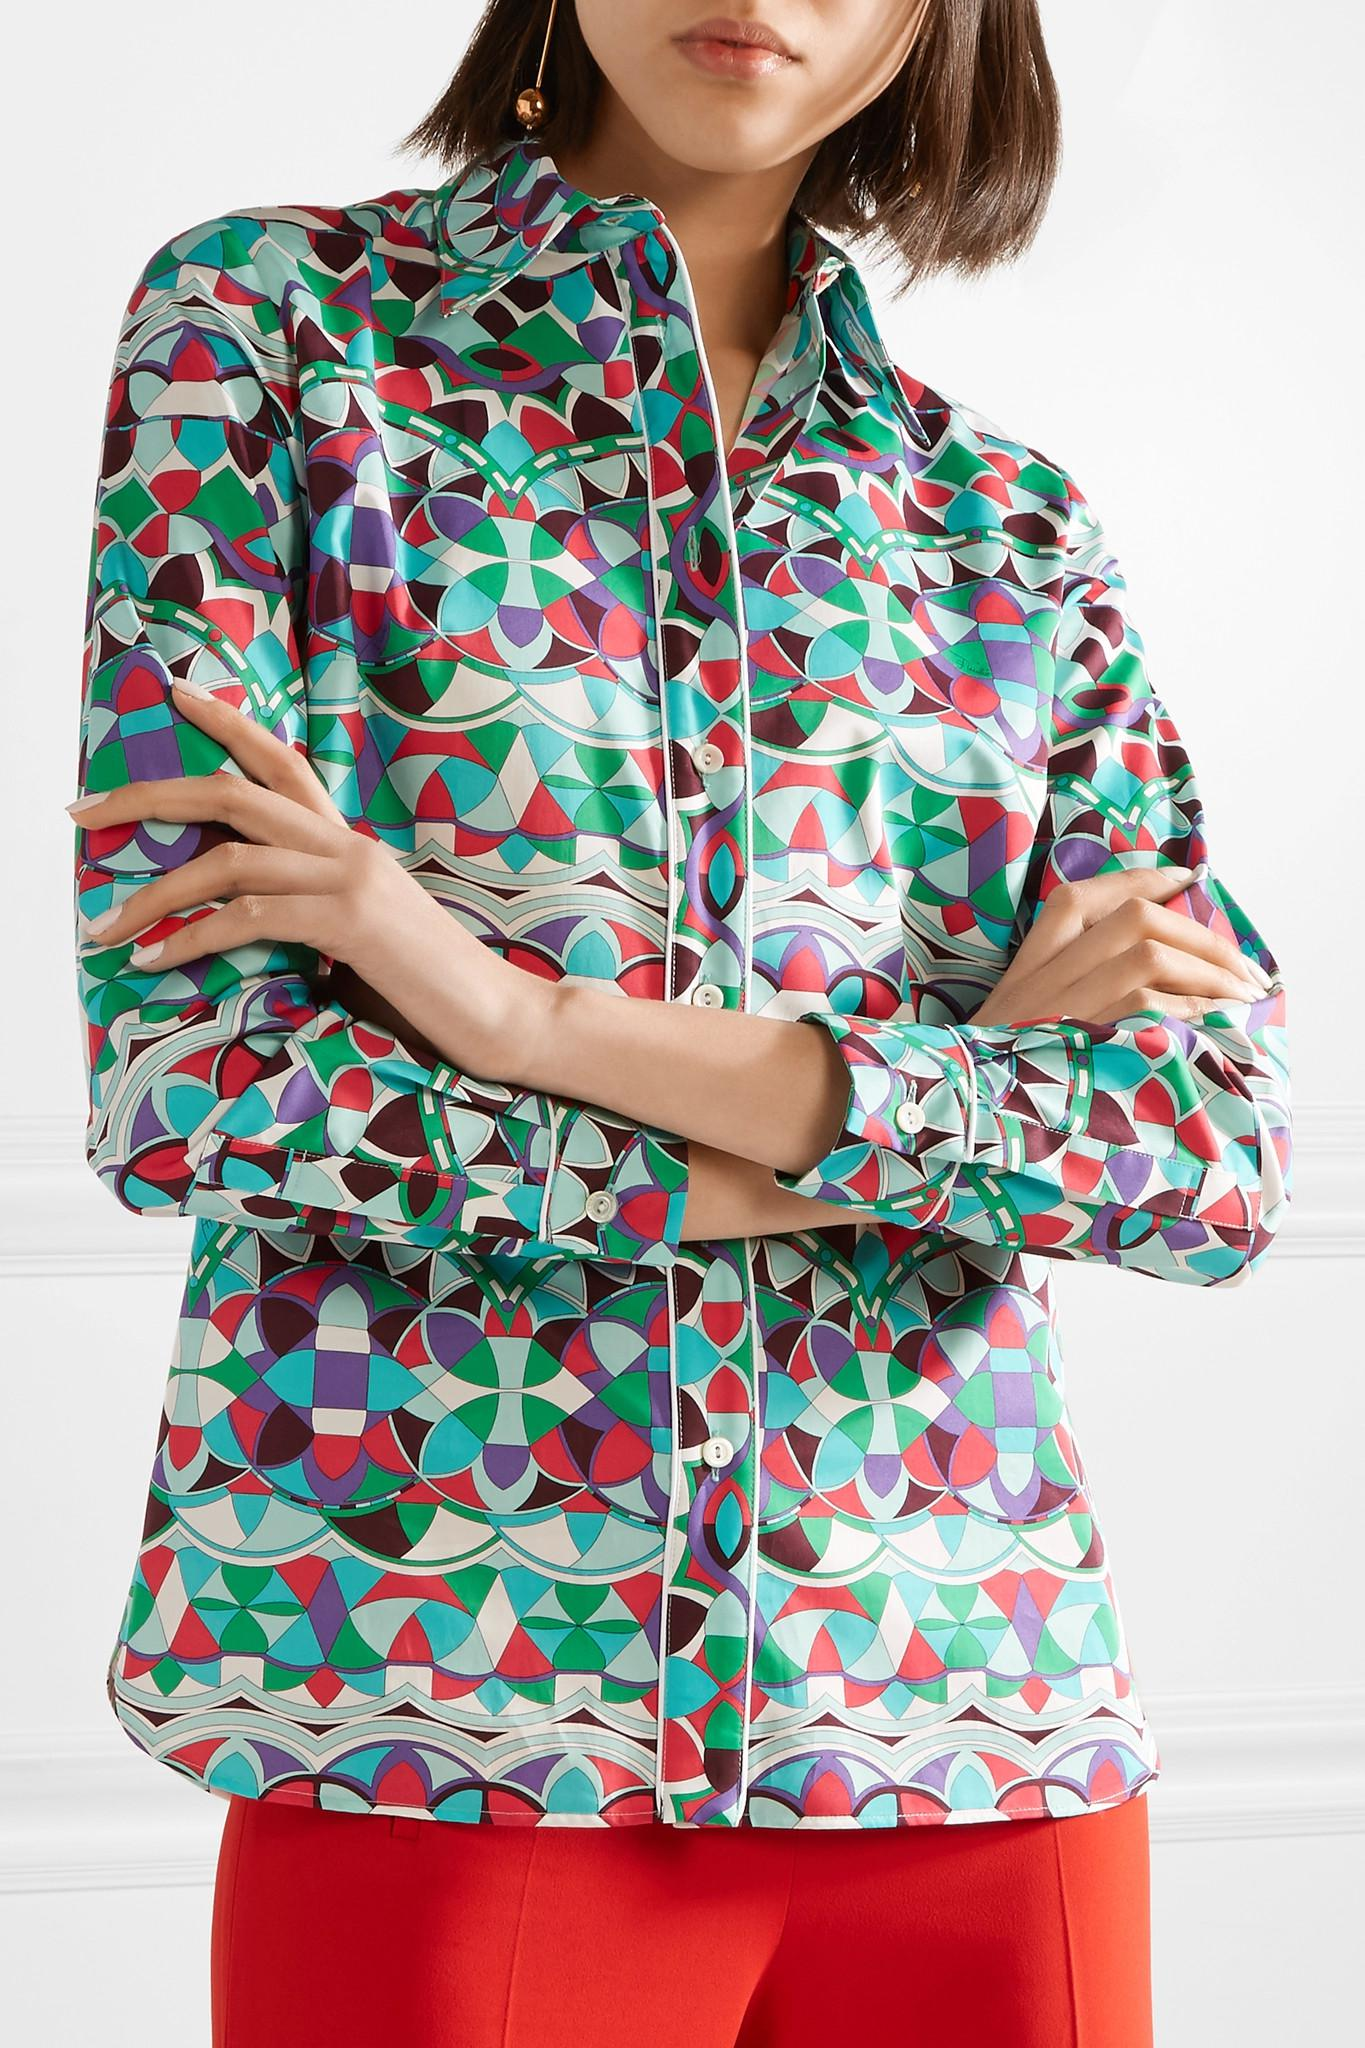 All Seasons Available Find Great Cheap Online Printed Cotton-poplin Shirt - Mint Emilio Pucci New Arrival Cheap Price Largest Supplier Cheap Price wdhV4G